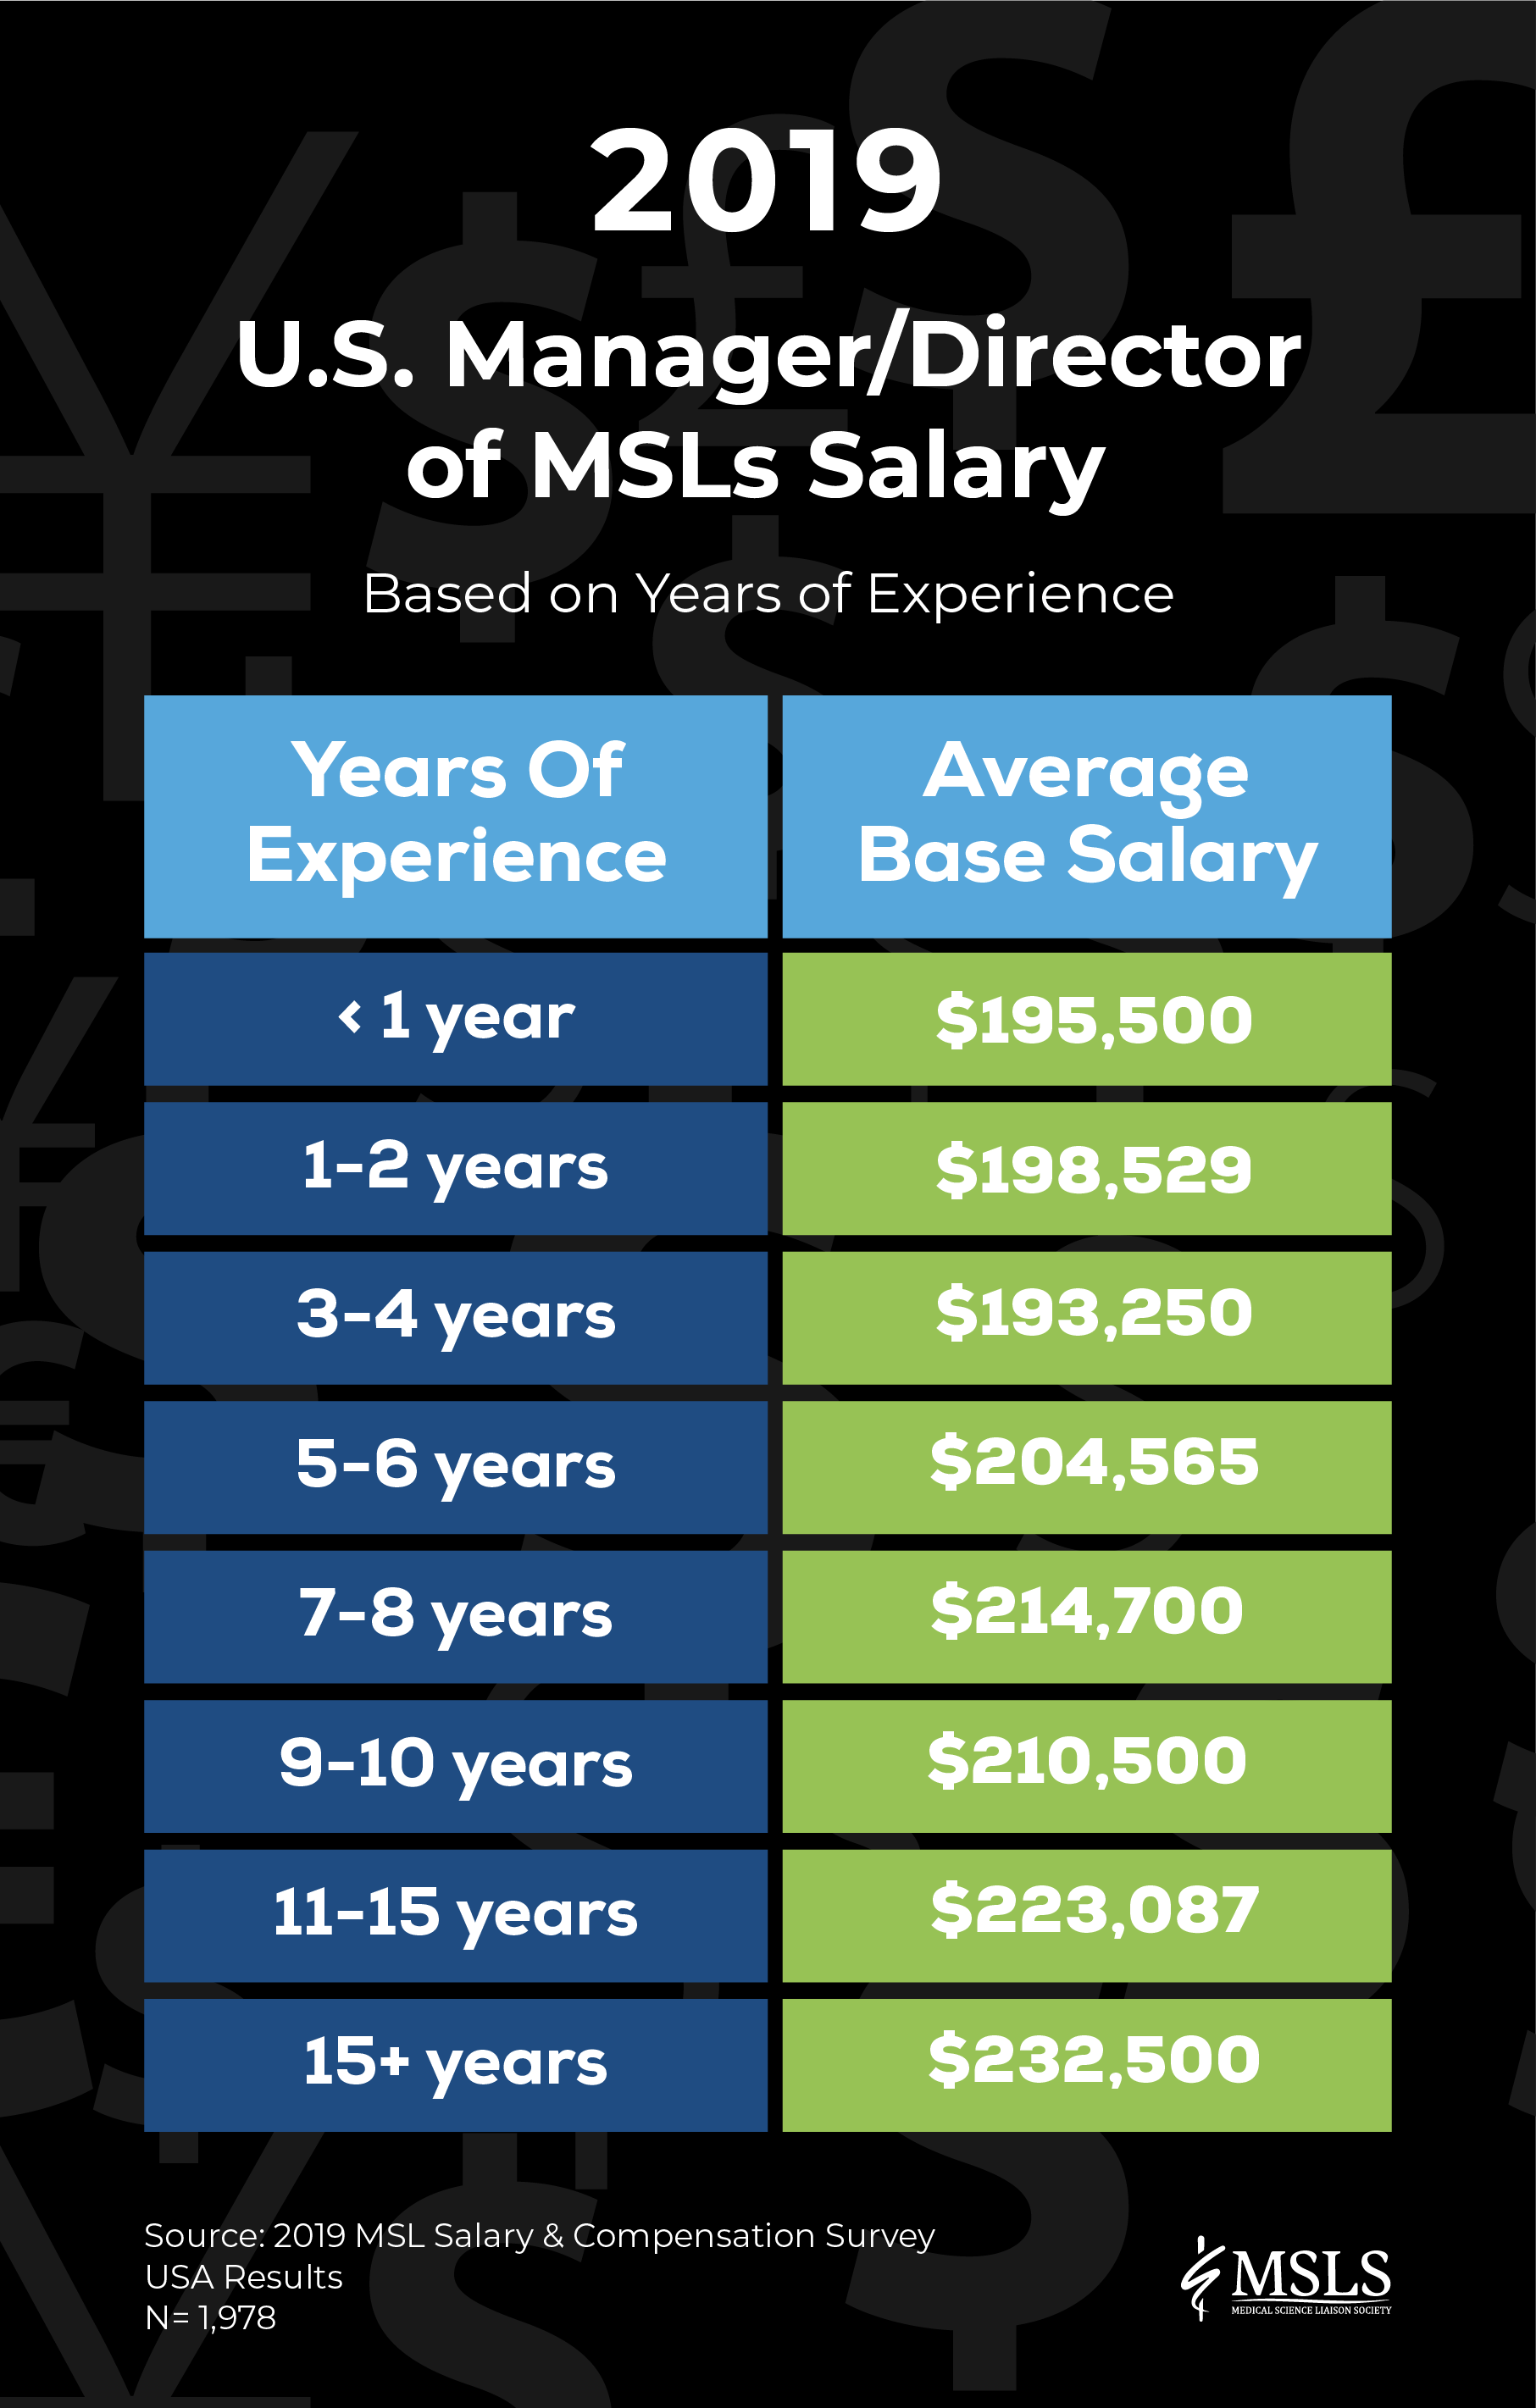 US Manager/ Director of Medical Science Liaisons Salary based on years of experience.